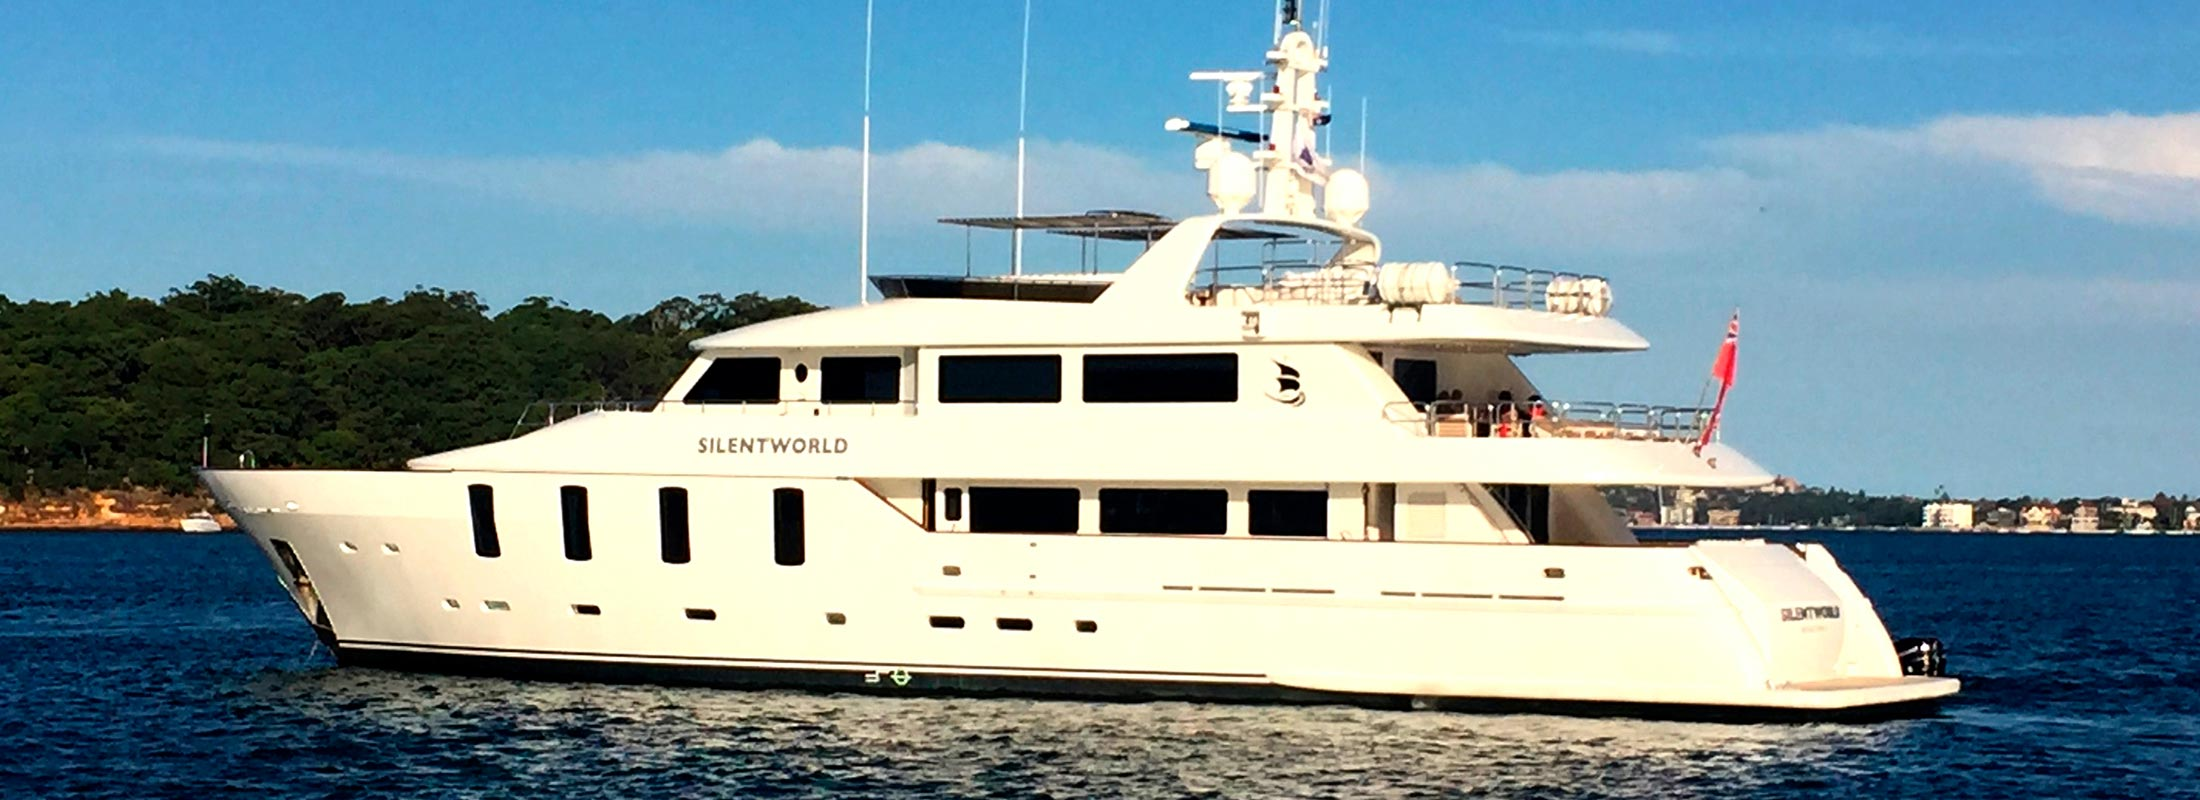 Silentworld Motor Yacht for Charter Cambodia Vietnam Great Barrier Reef slider 1